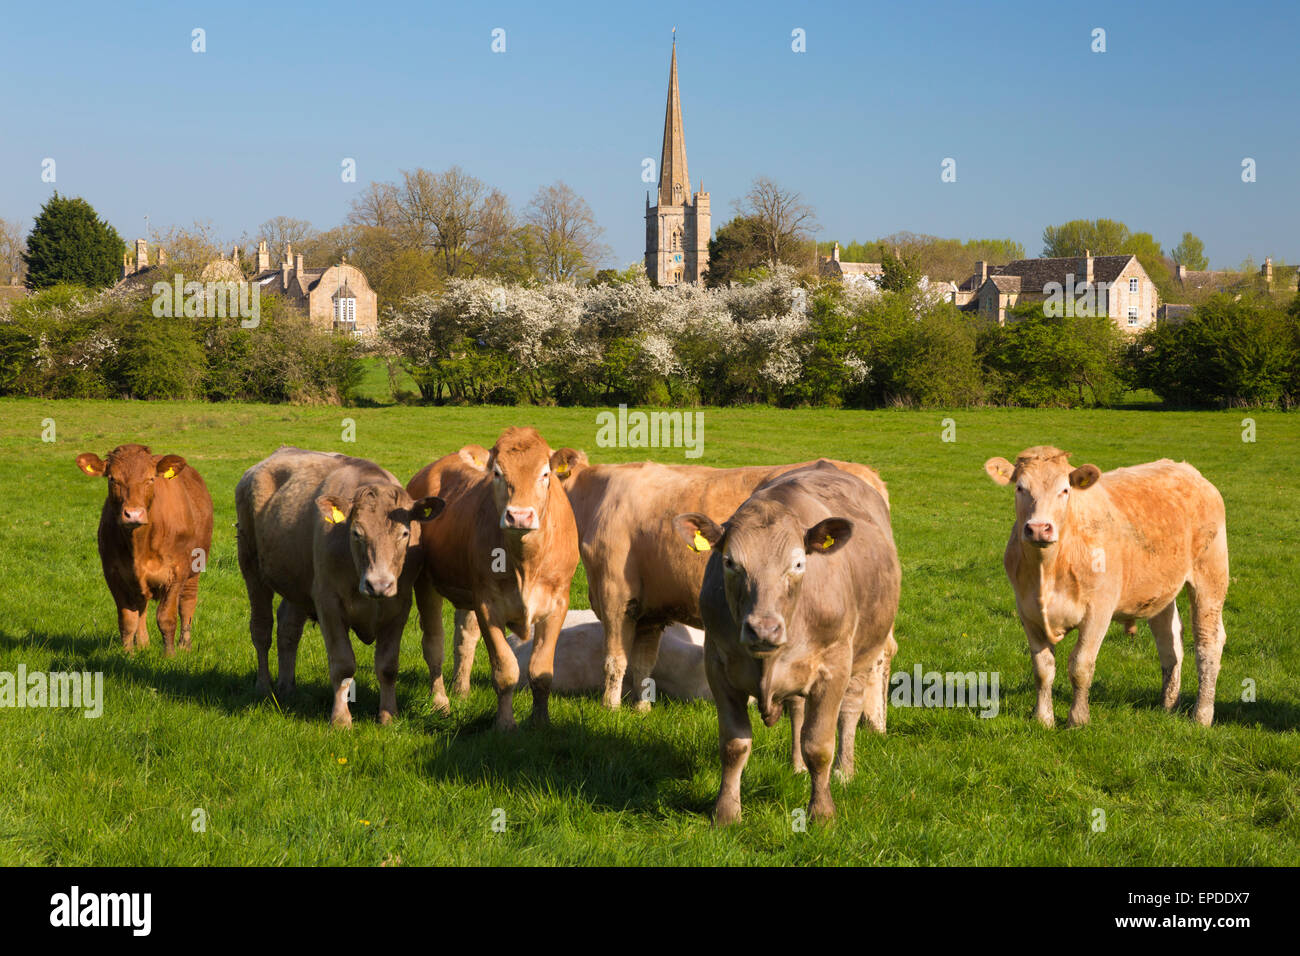 Cows in meadow by Cotswold village, Burford, Cotswolds, Oxfordshire, England, United Kingdom, Europe - Stock Image